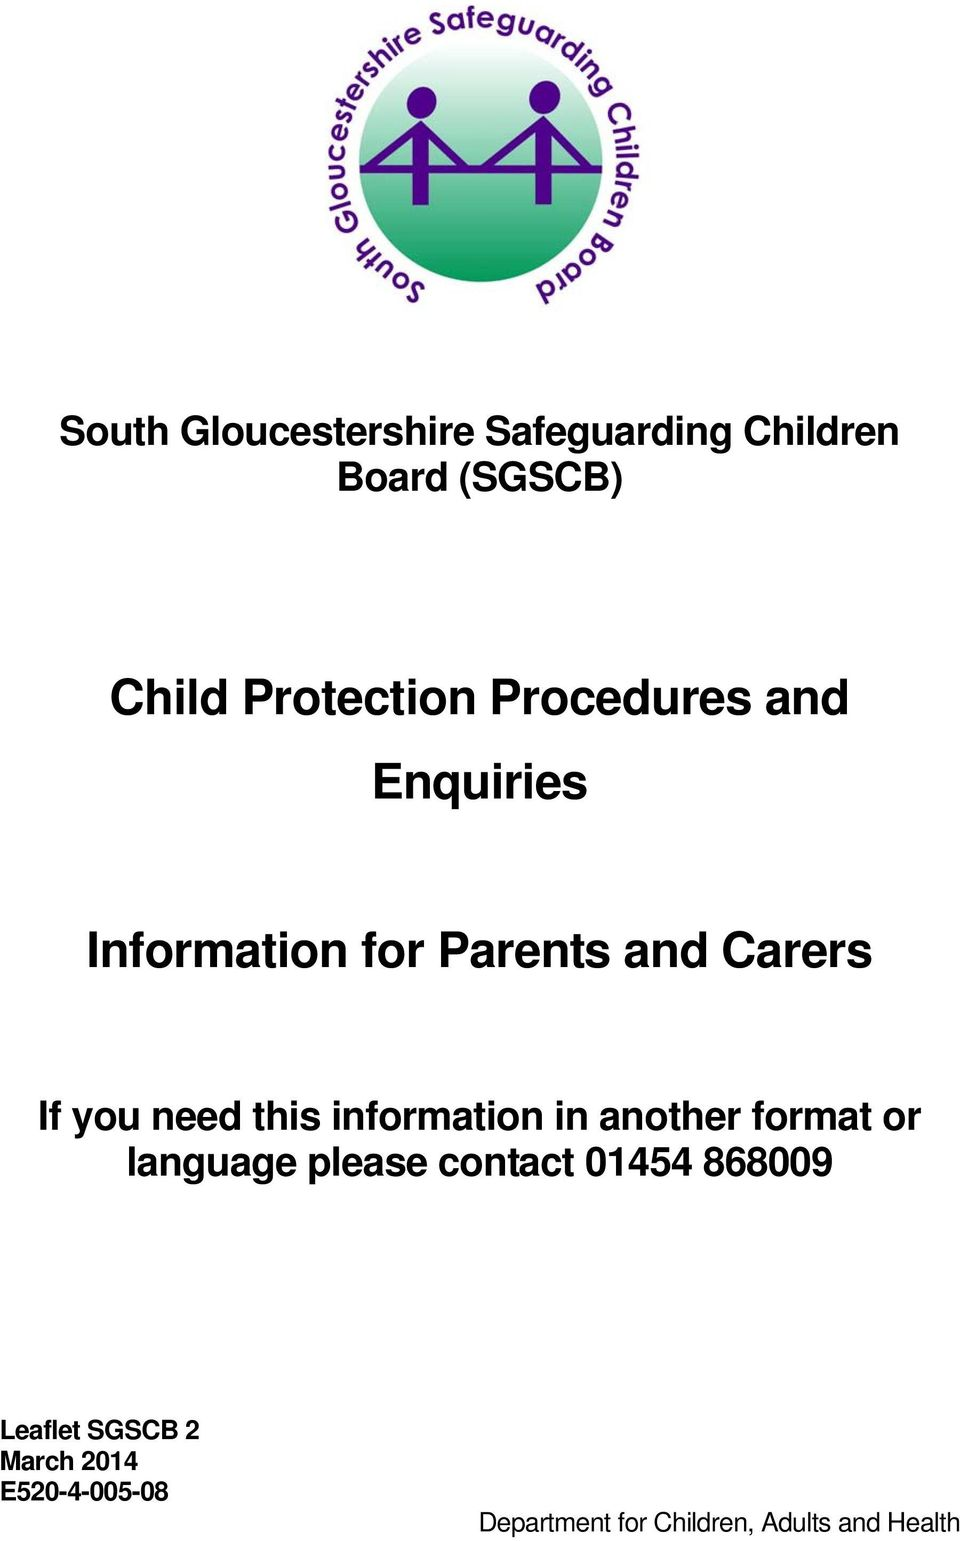 information in another format or language please contact 01454 868009